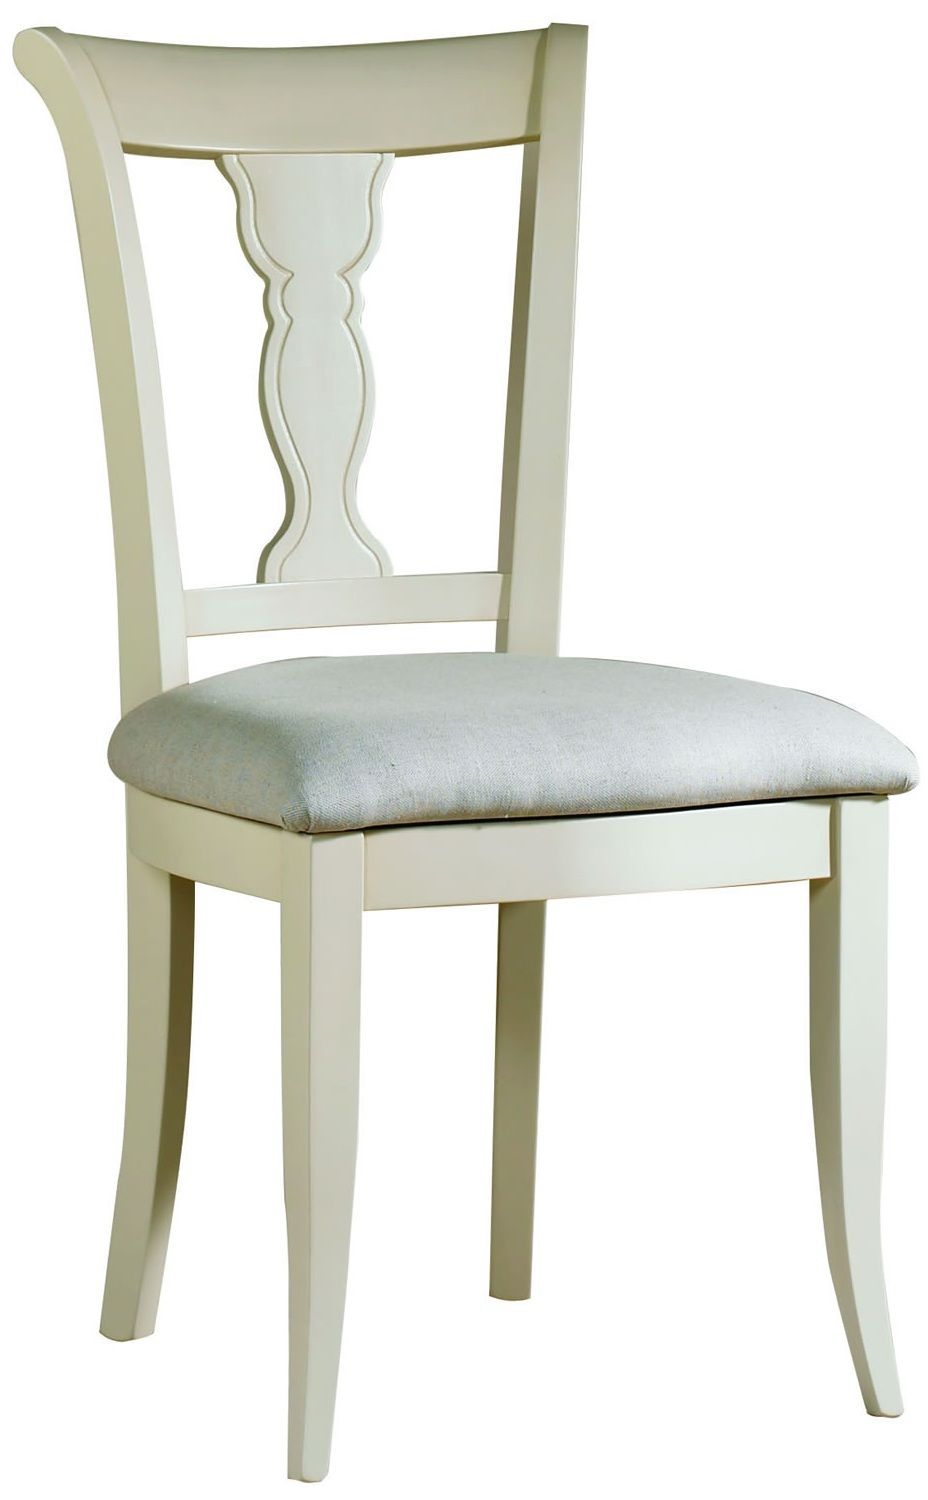 Country house vase-back chair. £123.99 http://www ...